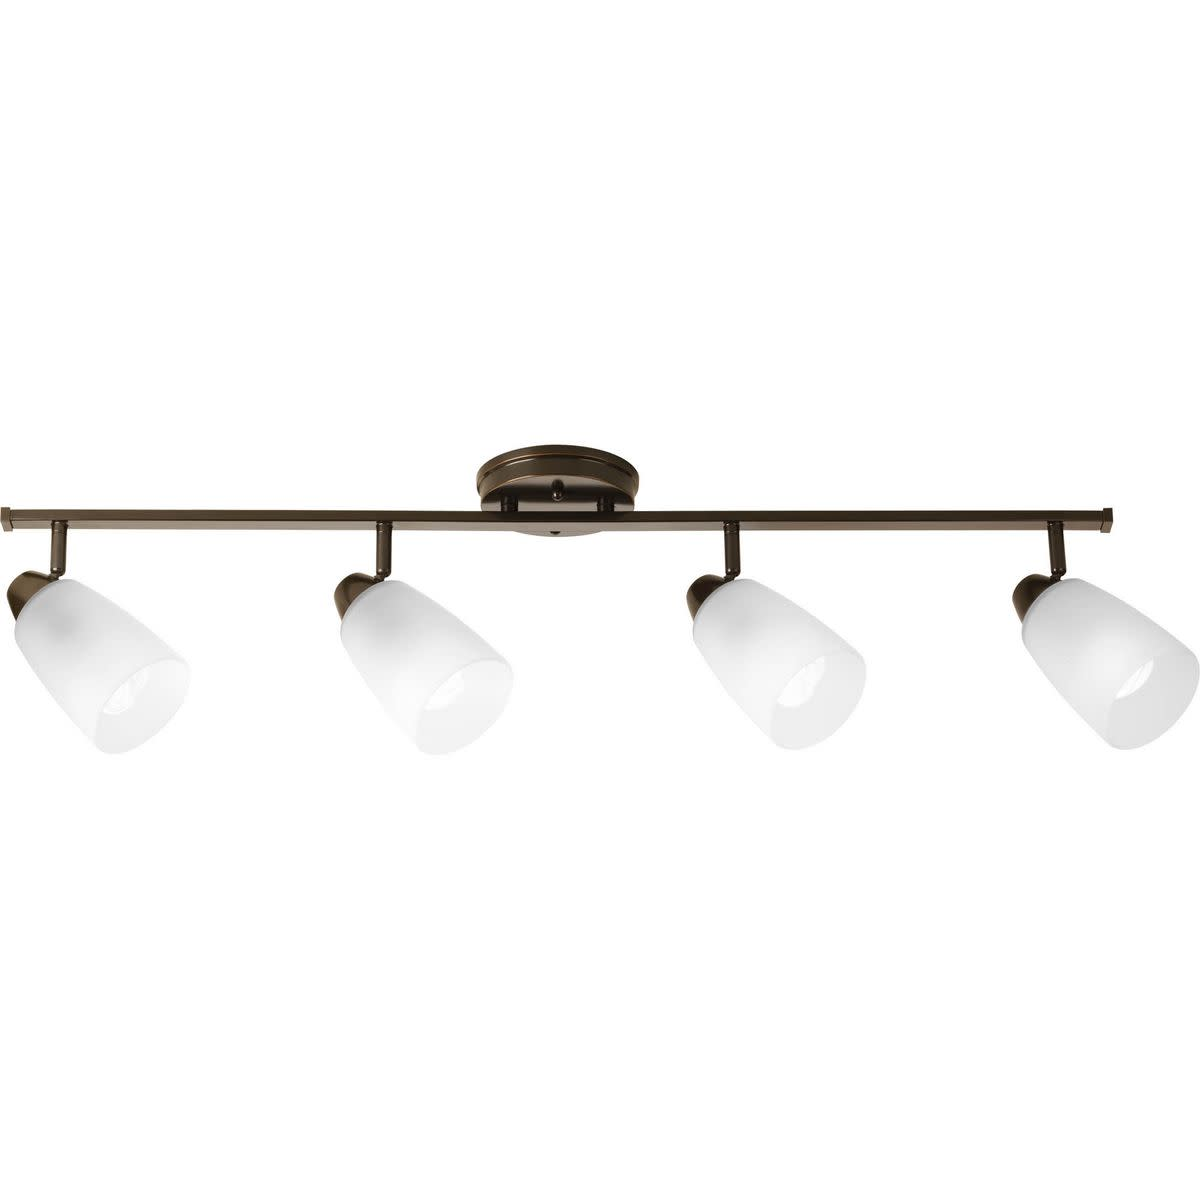 Progress lighting p3362 wisten 40 four light track style semi flush mount ceiling fixtures